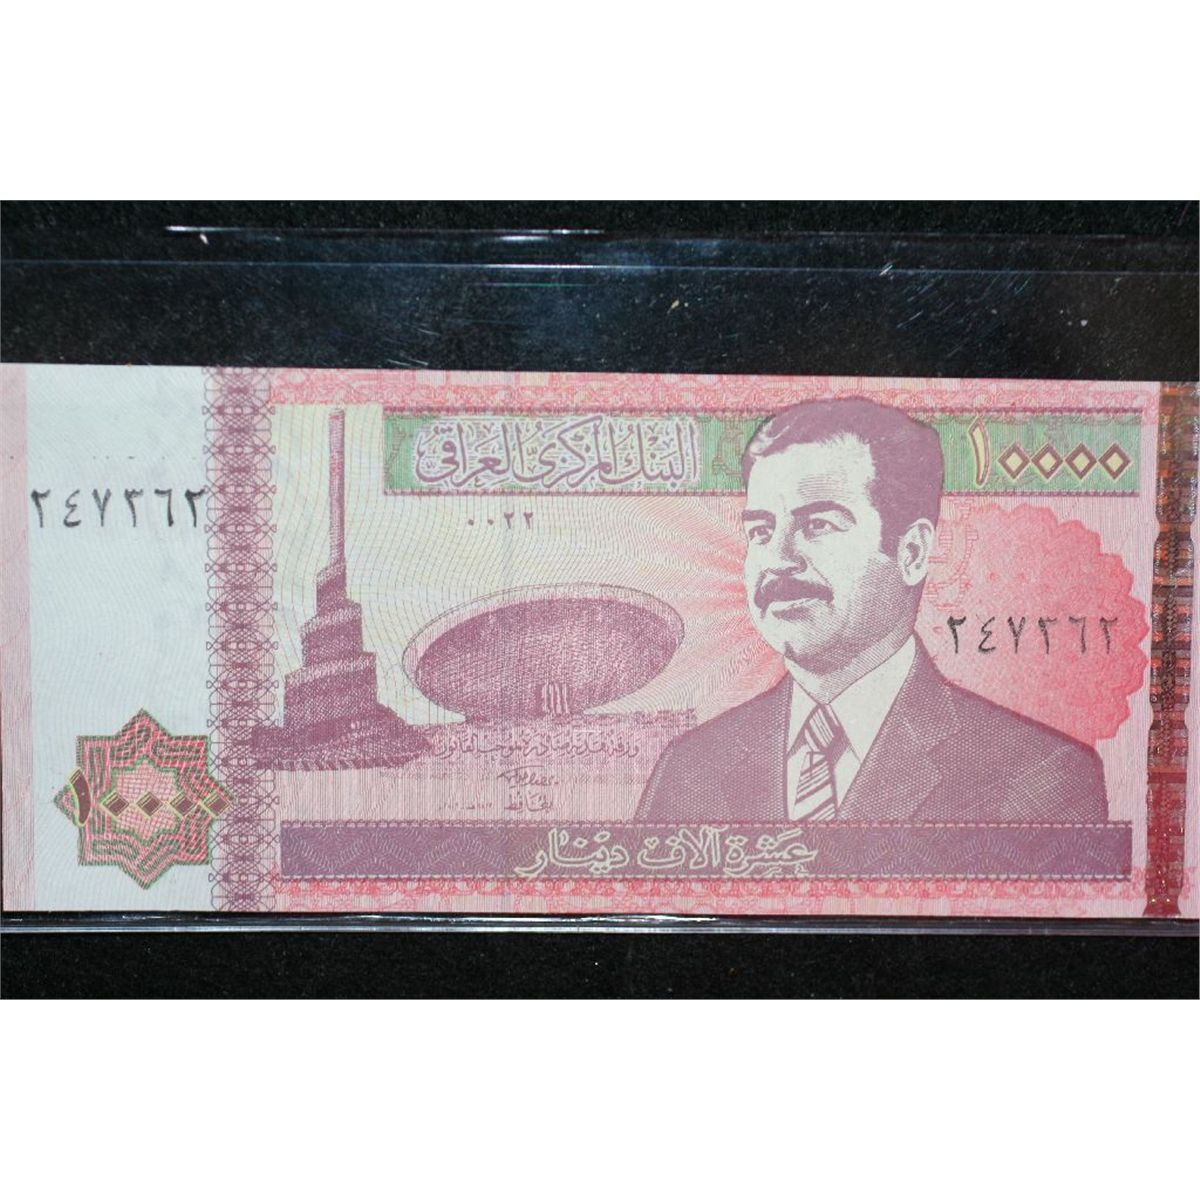 Image 1 Central Bank Of Iraq 10000 Dinars Foreign Note